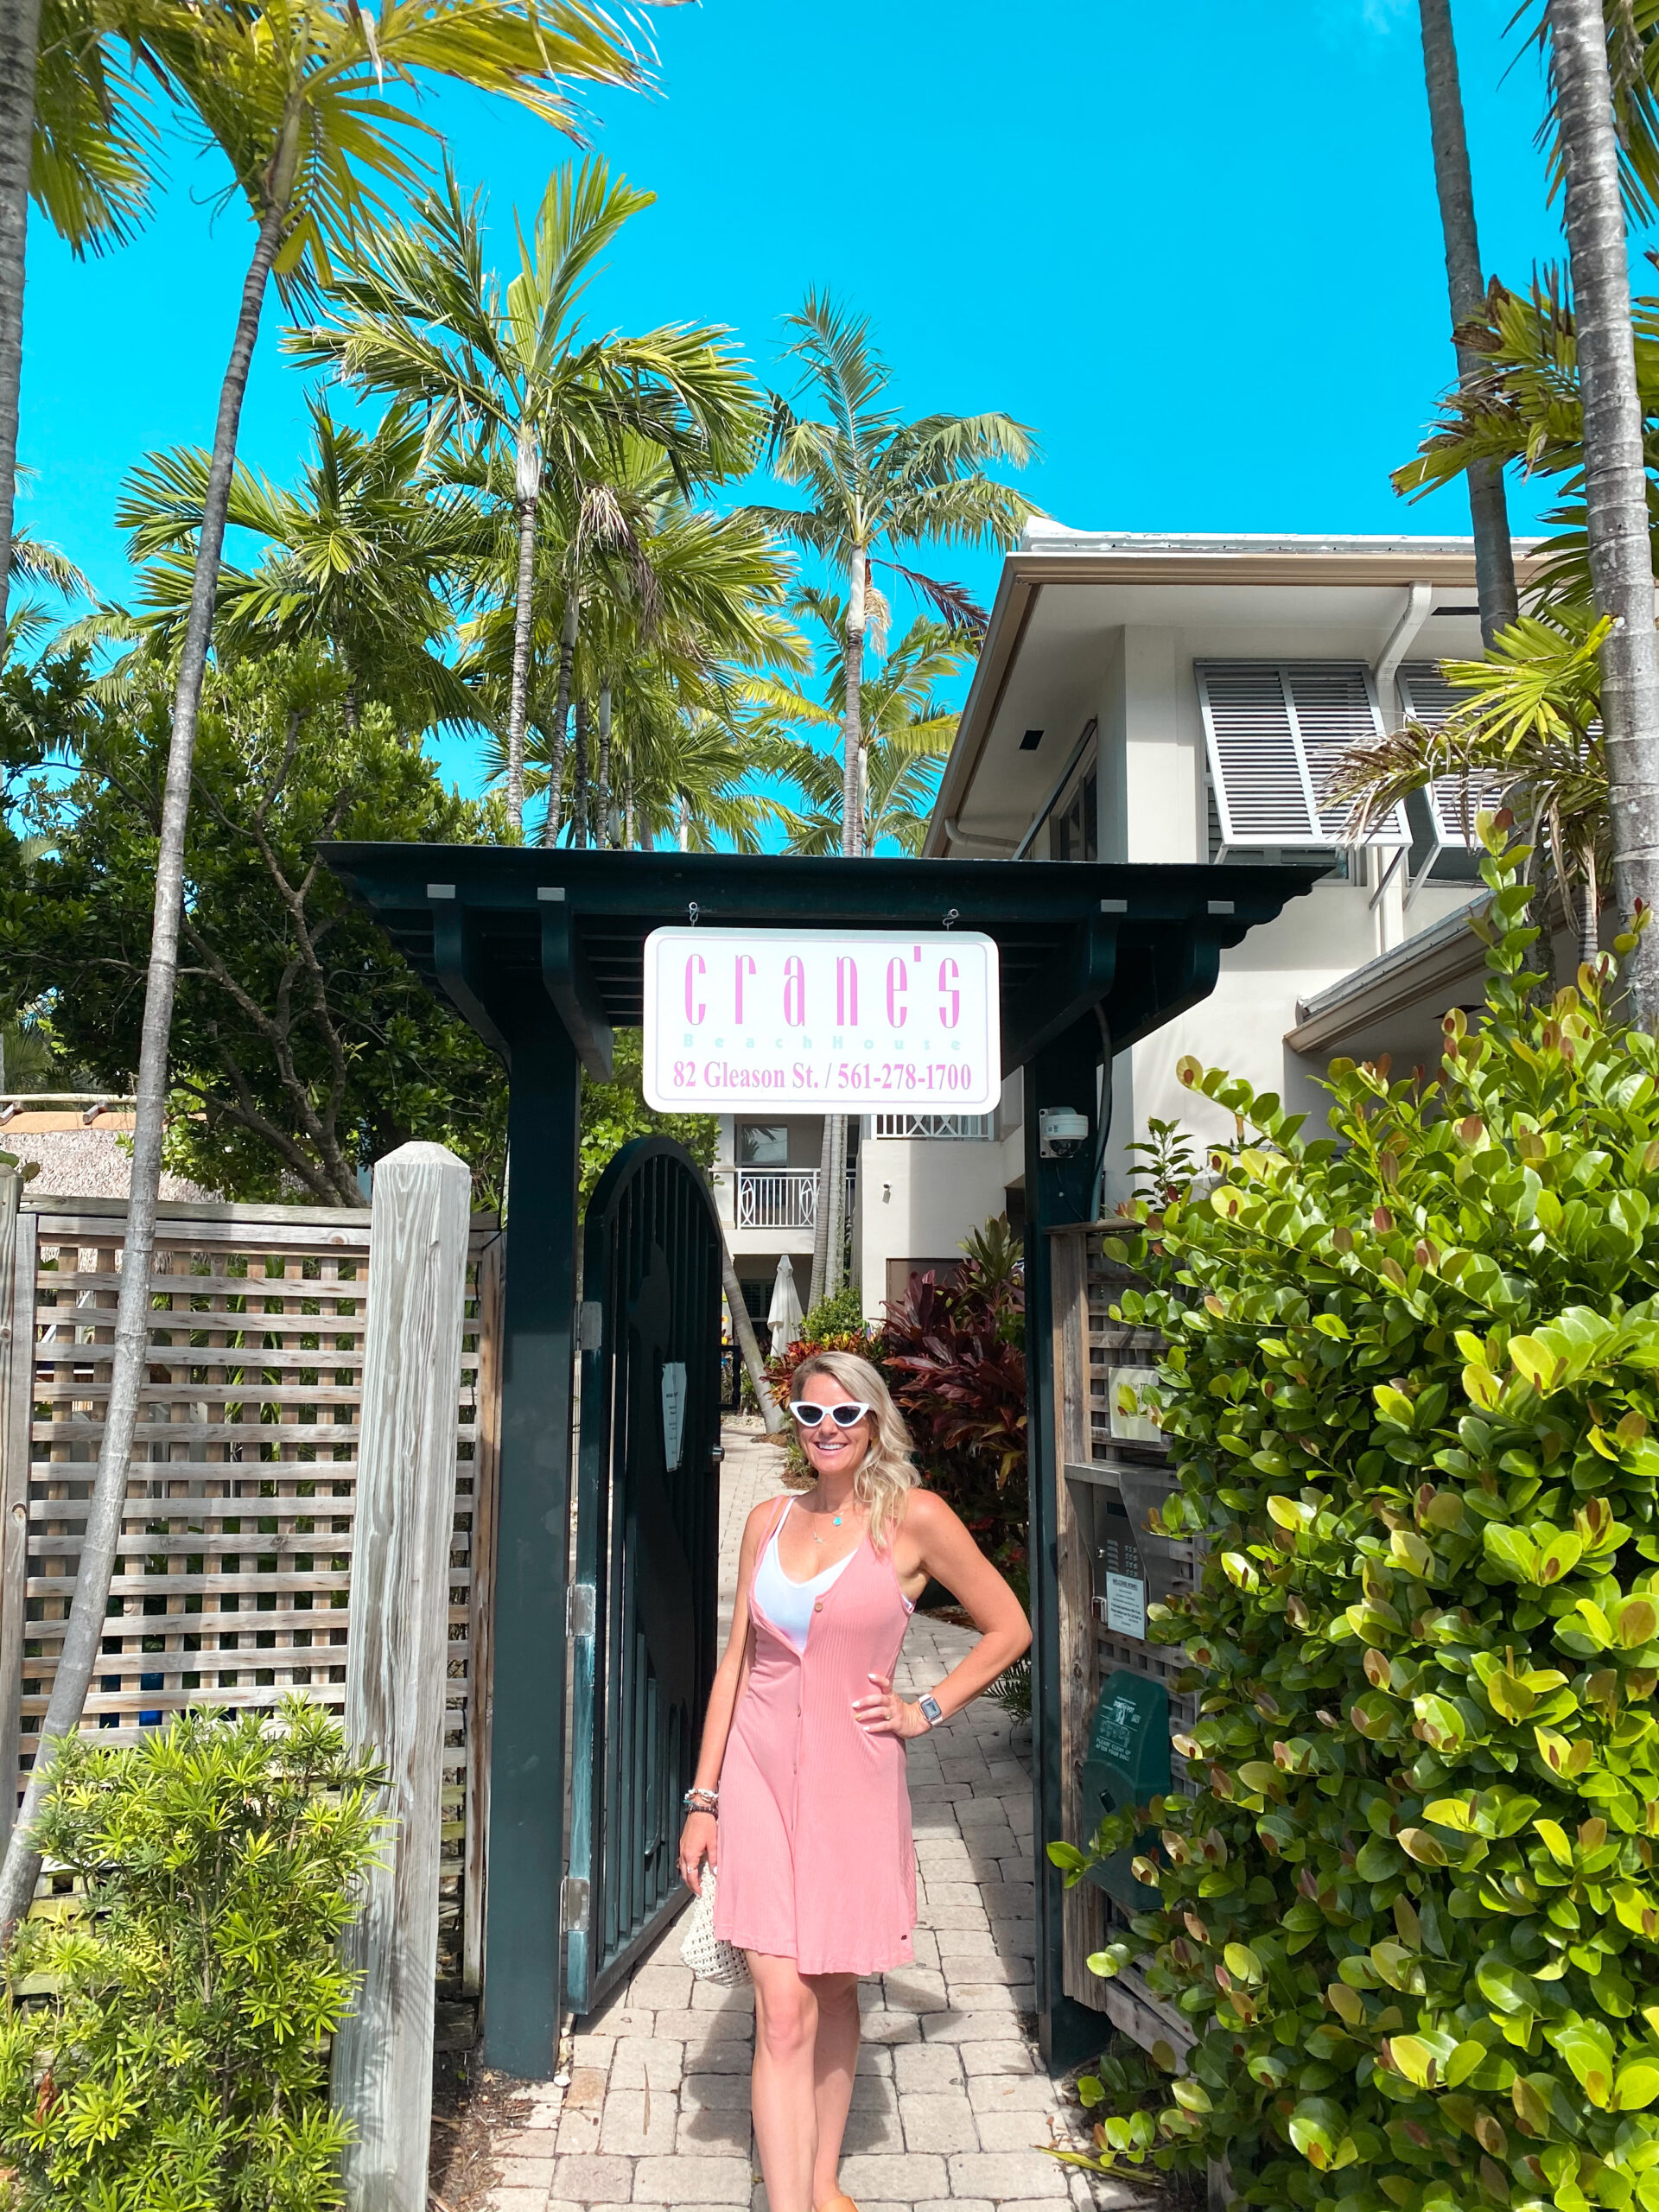 Staycation at Crane's Beach House, Delray